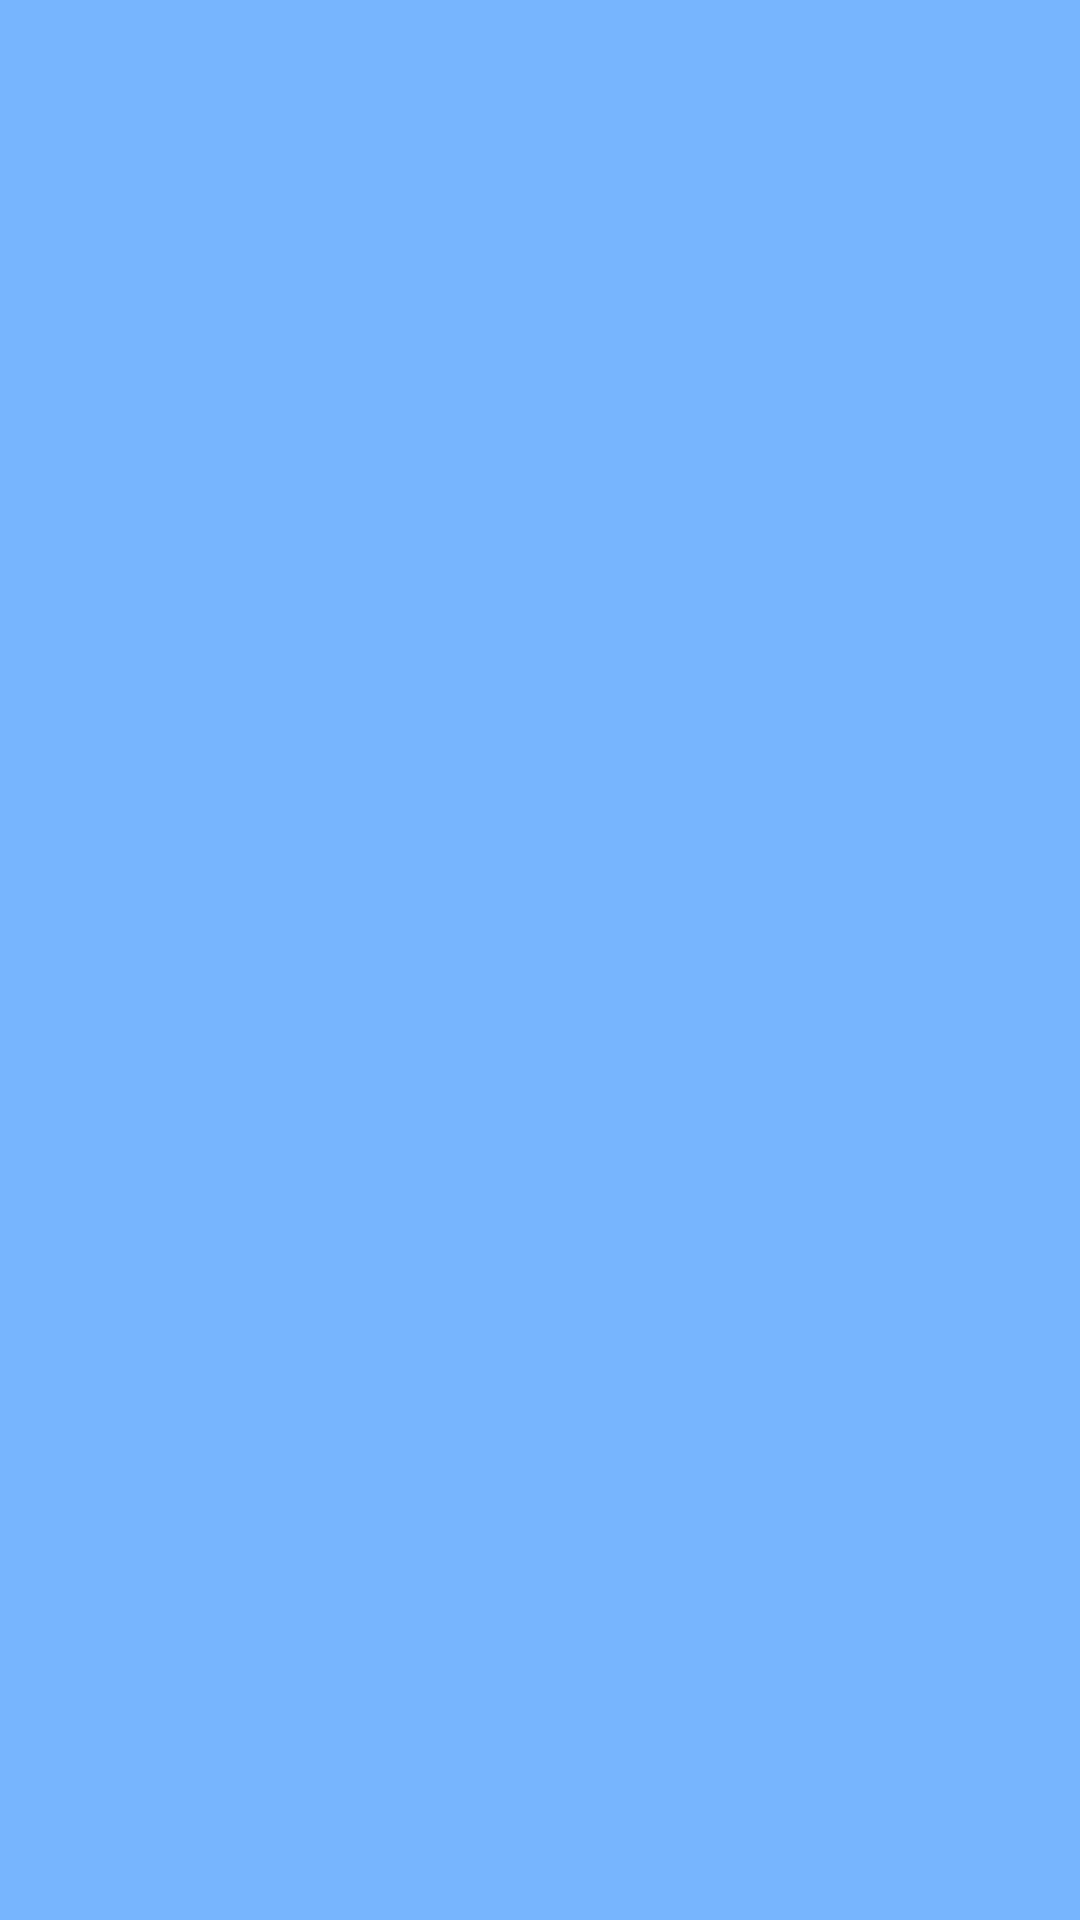 1080x1920 French Sky Blue Solid Color Background